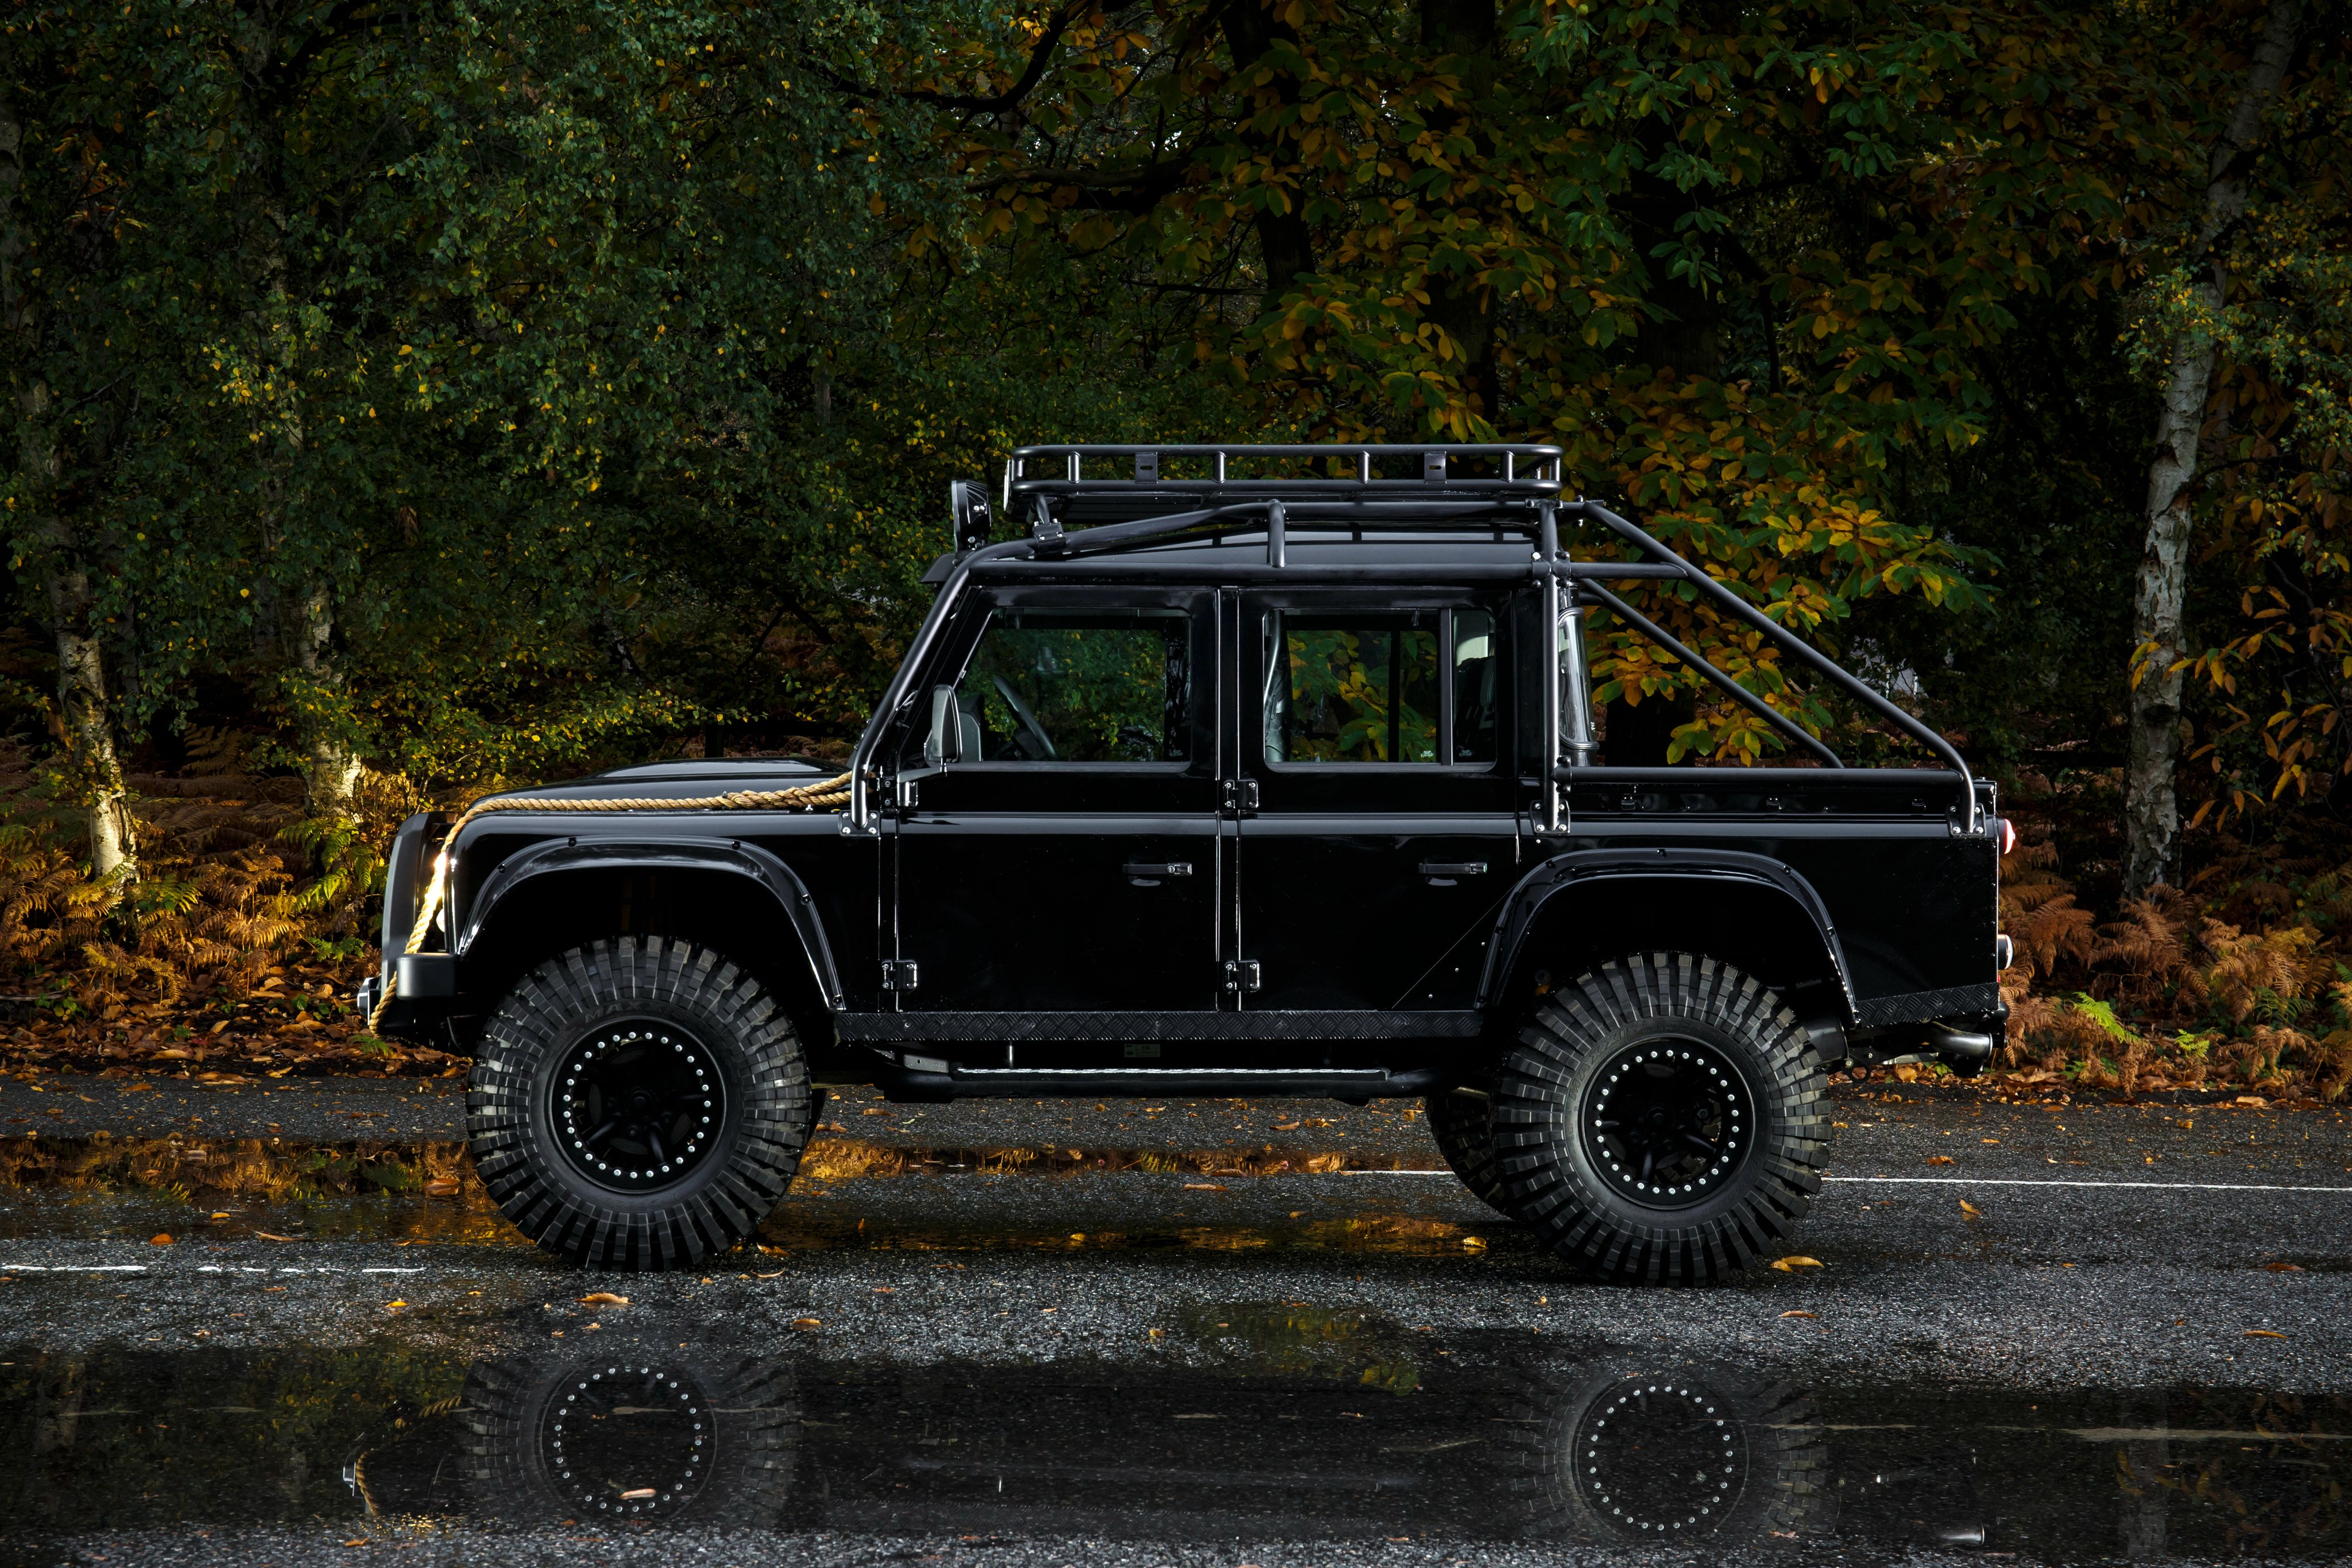 """Land Rover Defender 110 """"007 Spectre"""" '2015 4x4 OFF ROAD"""